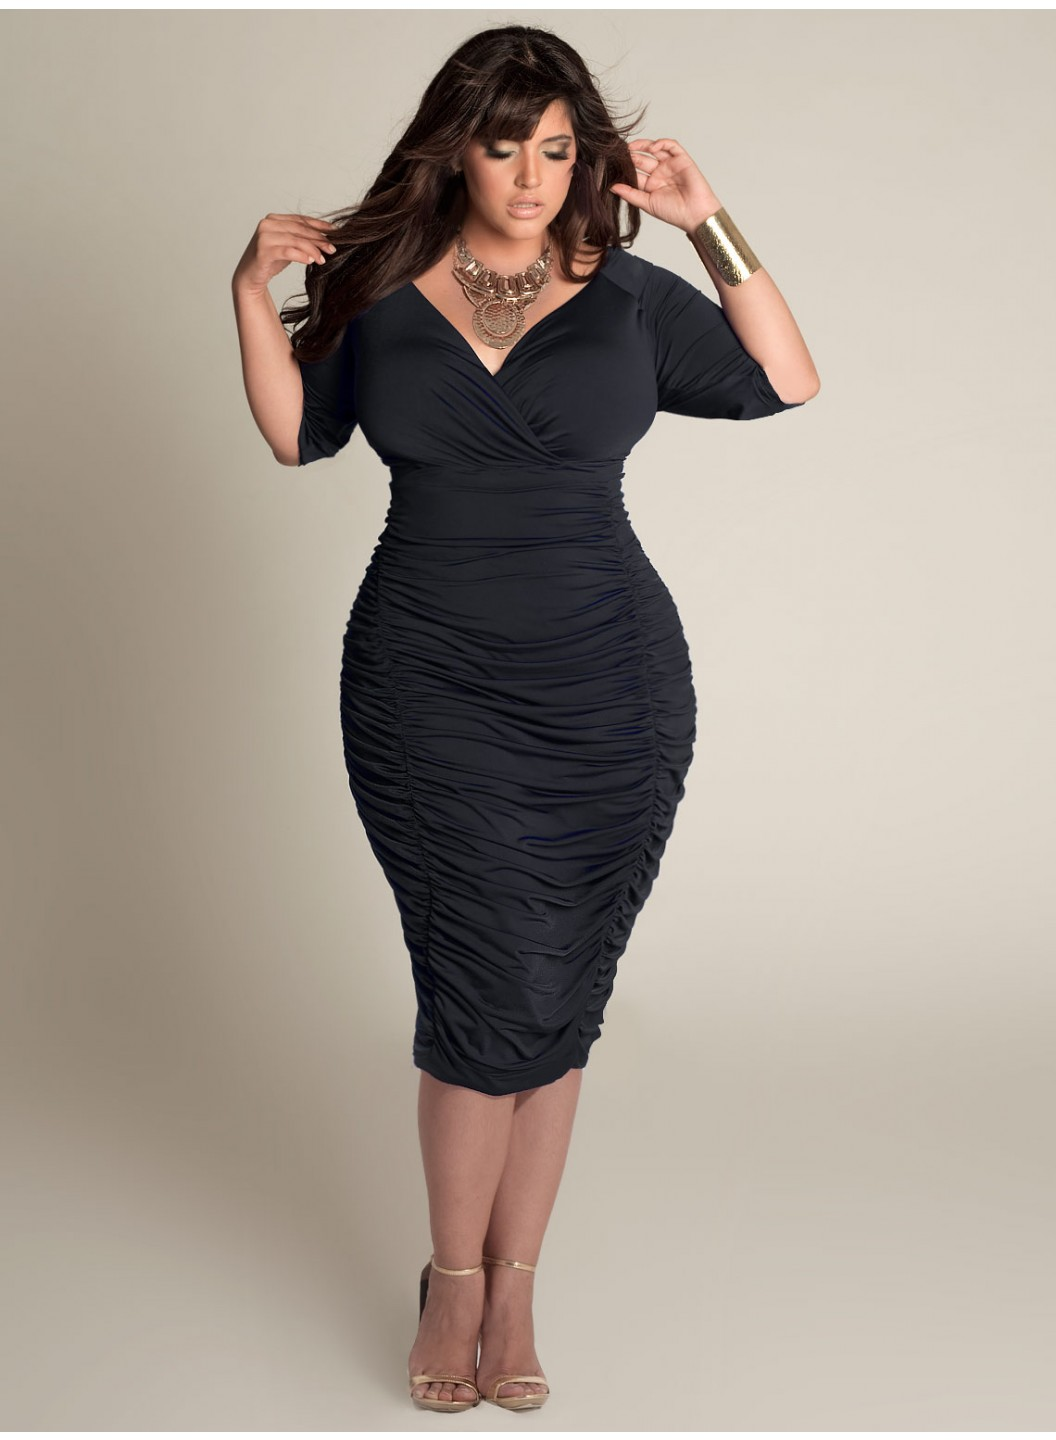 Check out new arrivals in women's plus size clothing & lingerie at Torrid. New styles with flawless fits for women with curves, sizes 10 -